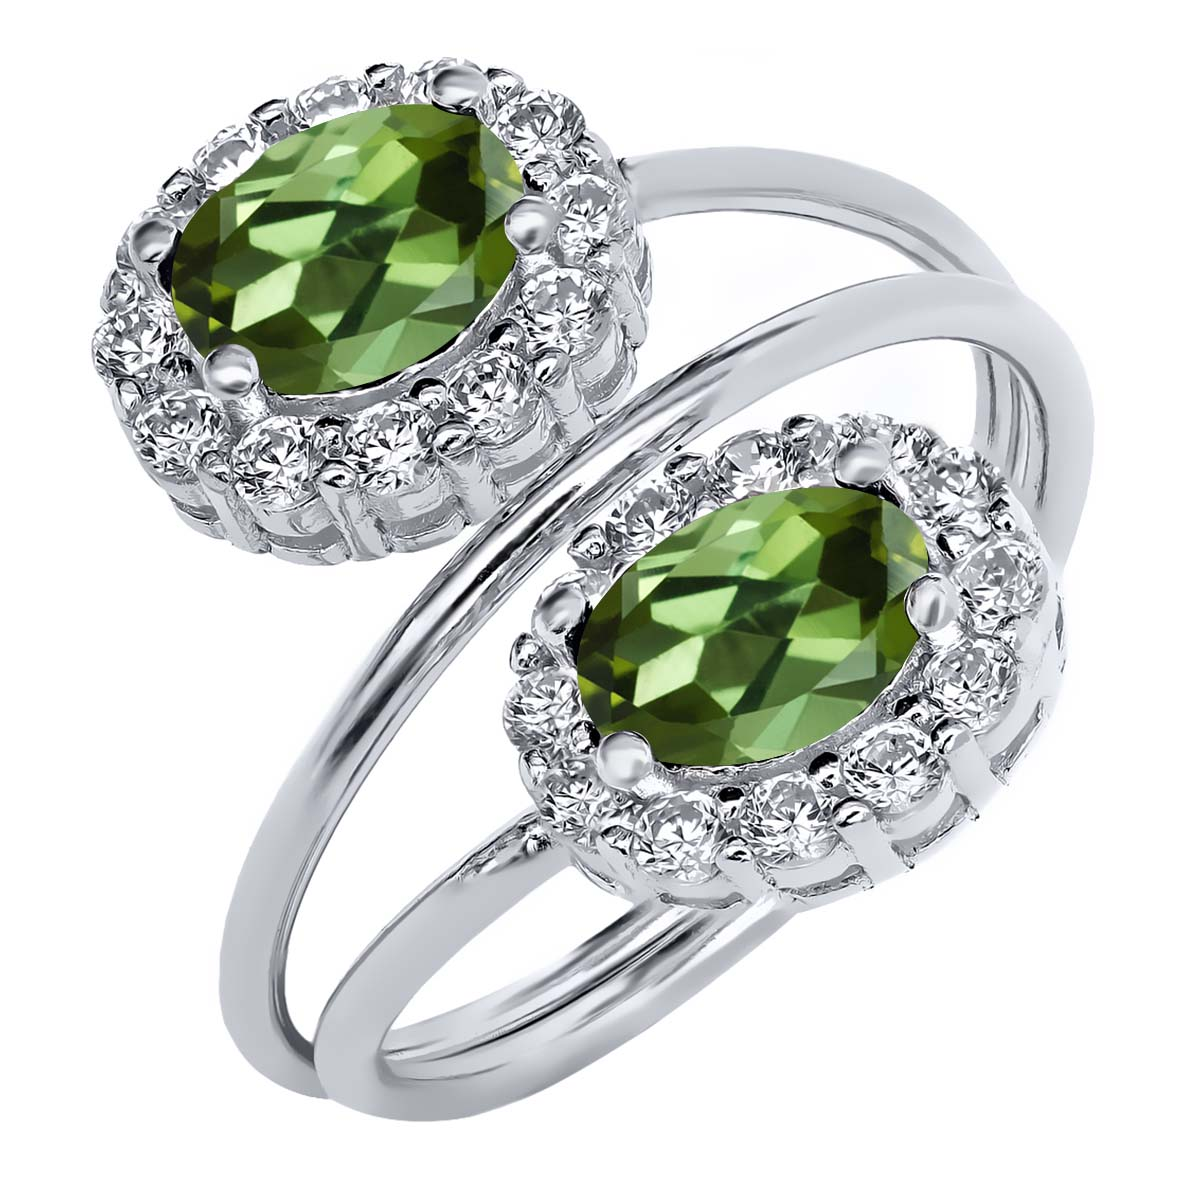 2.48 Ct Oval Green Tourmaline 925 Sterling Silver Ring by